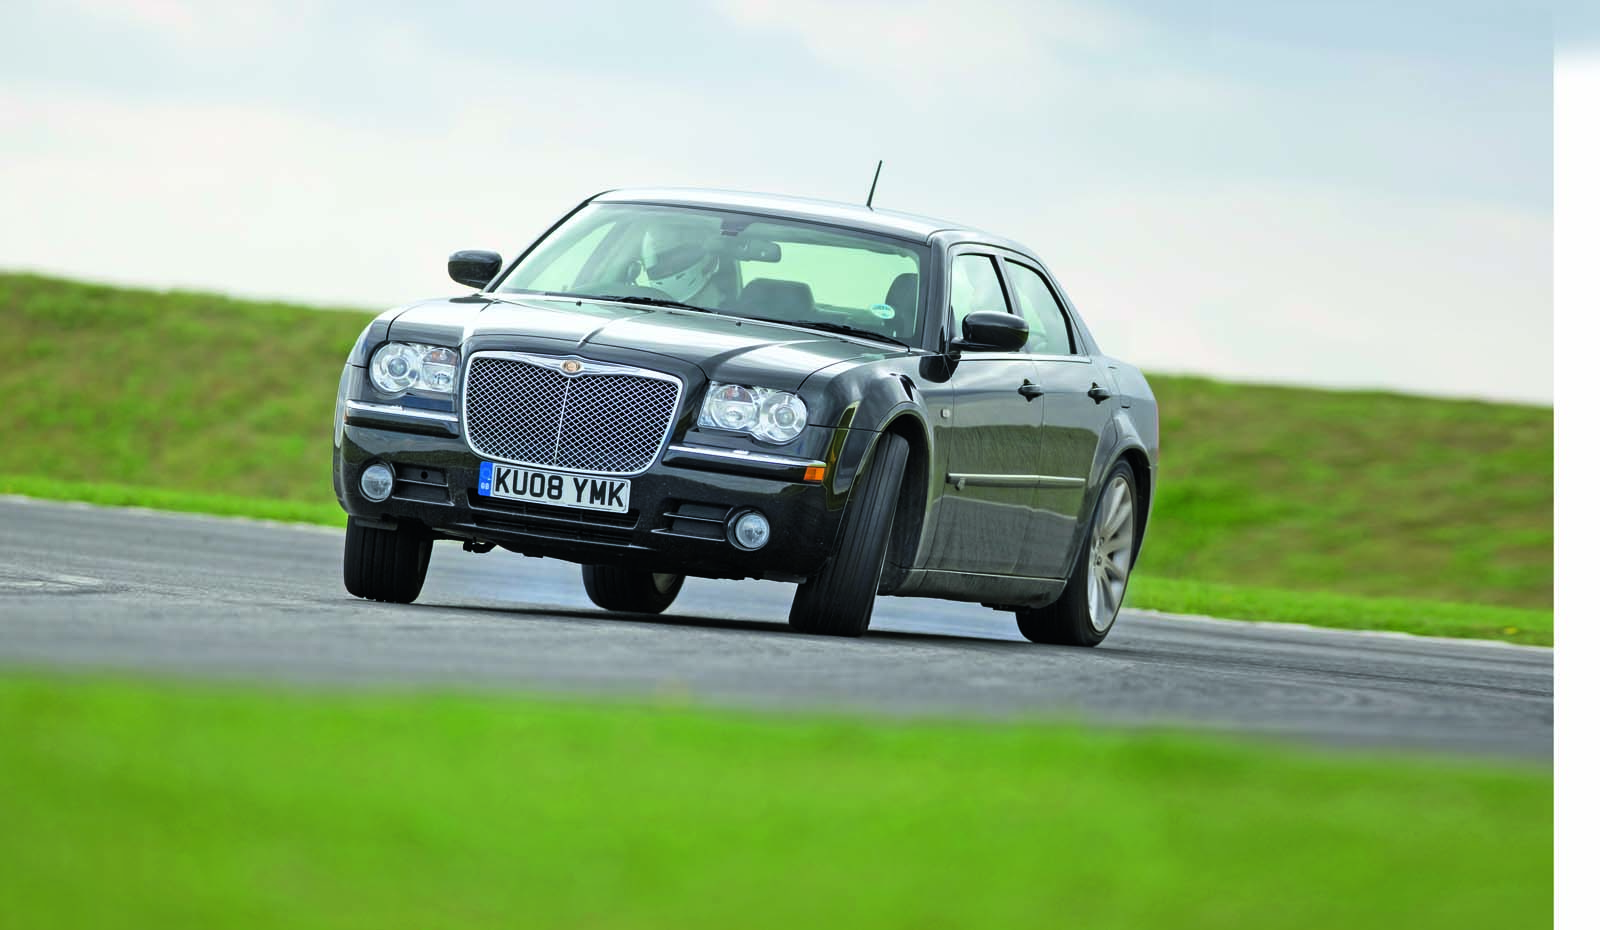 Used car buying guide: Chrysler 300C